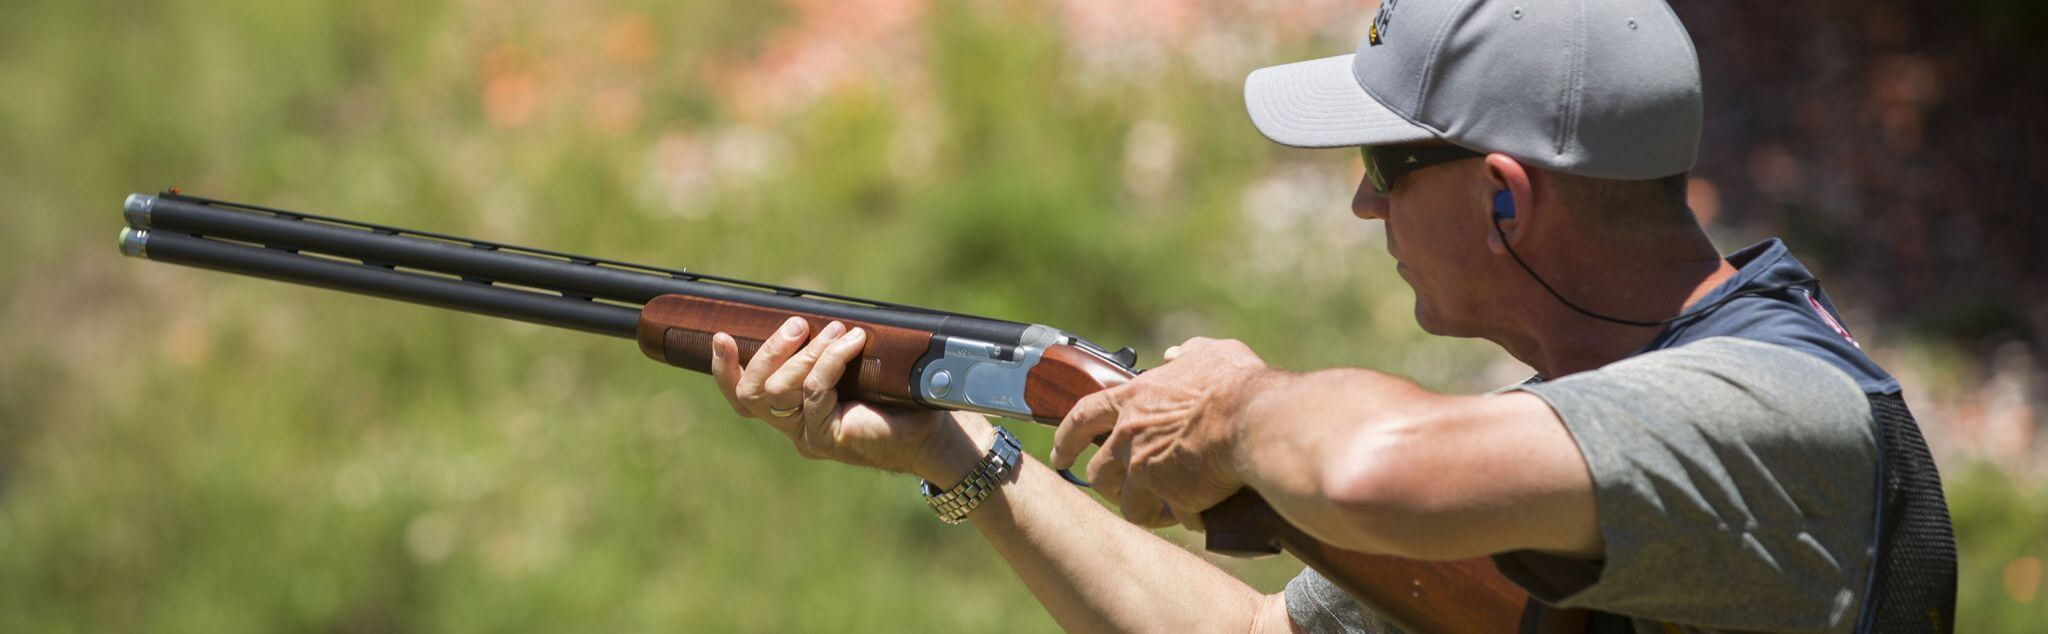 Clay Pigeon Shooting in Tyne and Wear